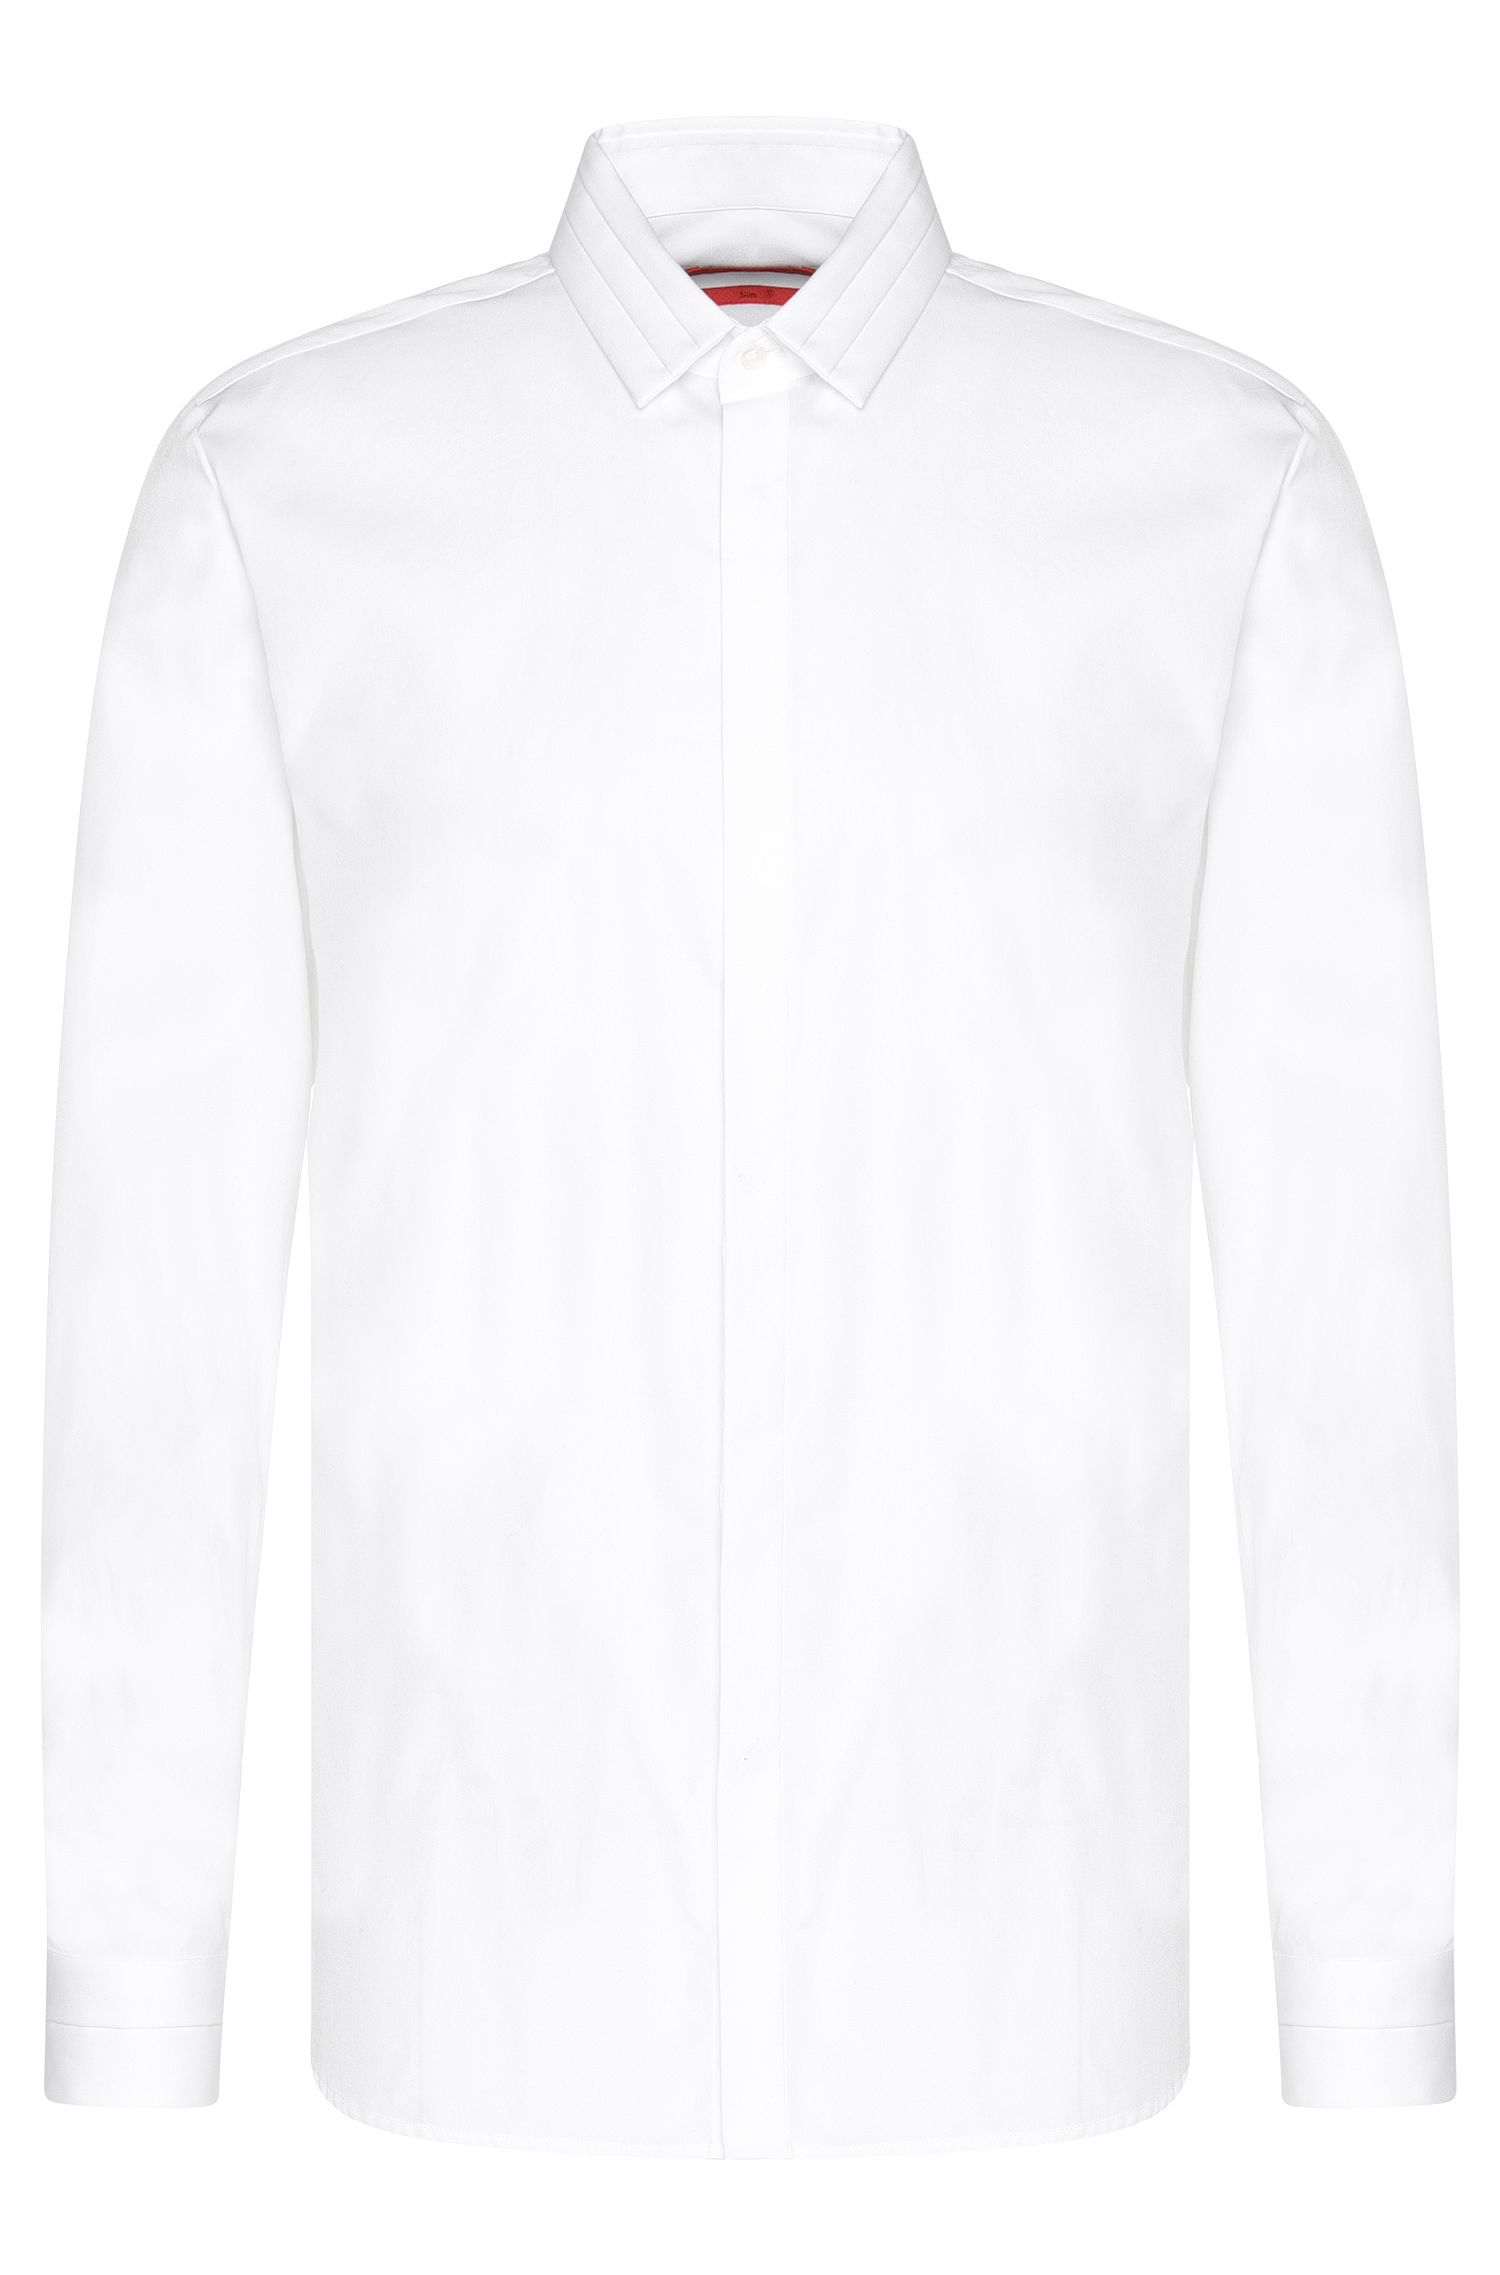 'Esid' | Slim Fit, Cotton Button Down Shirt